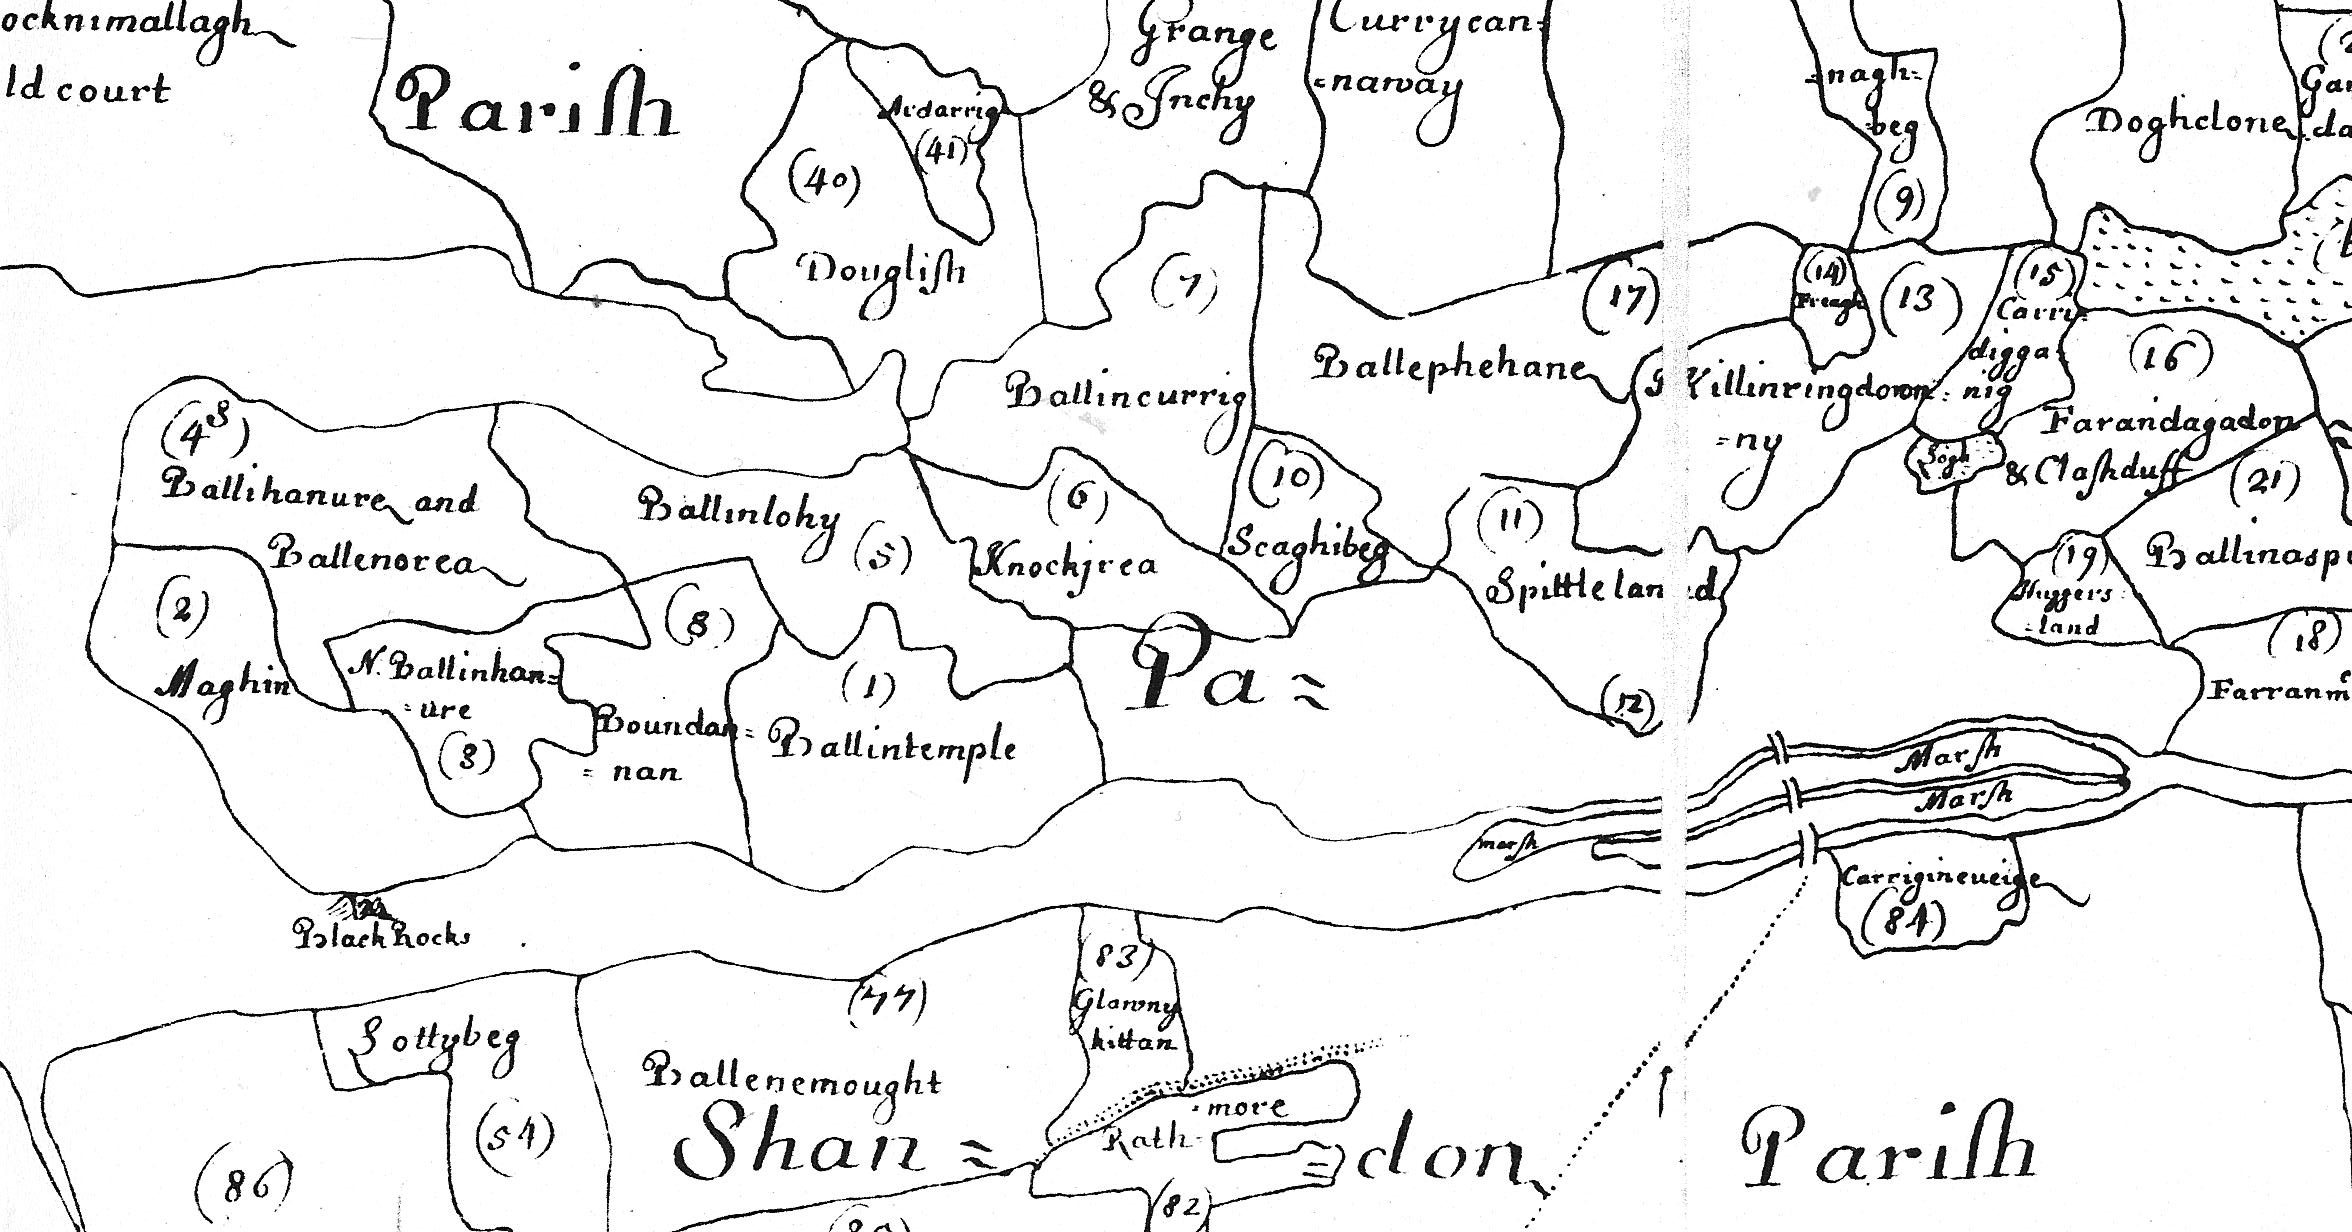 Section of William Petty's map of 1655 showing Cork and what is now the south east ward